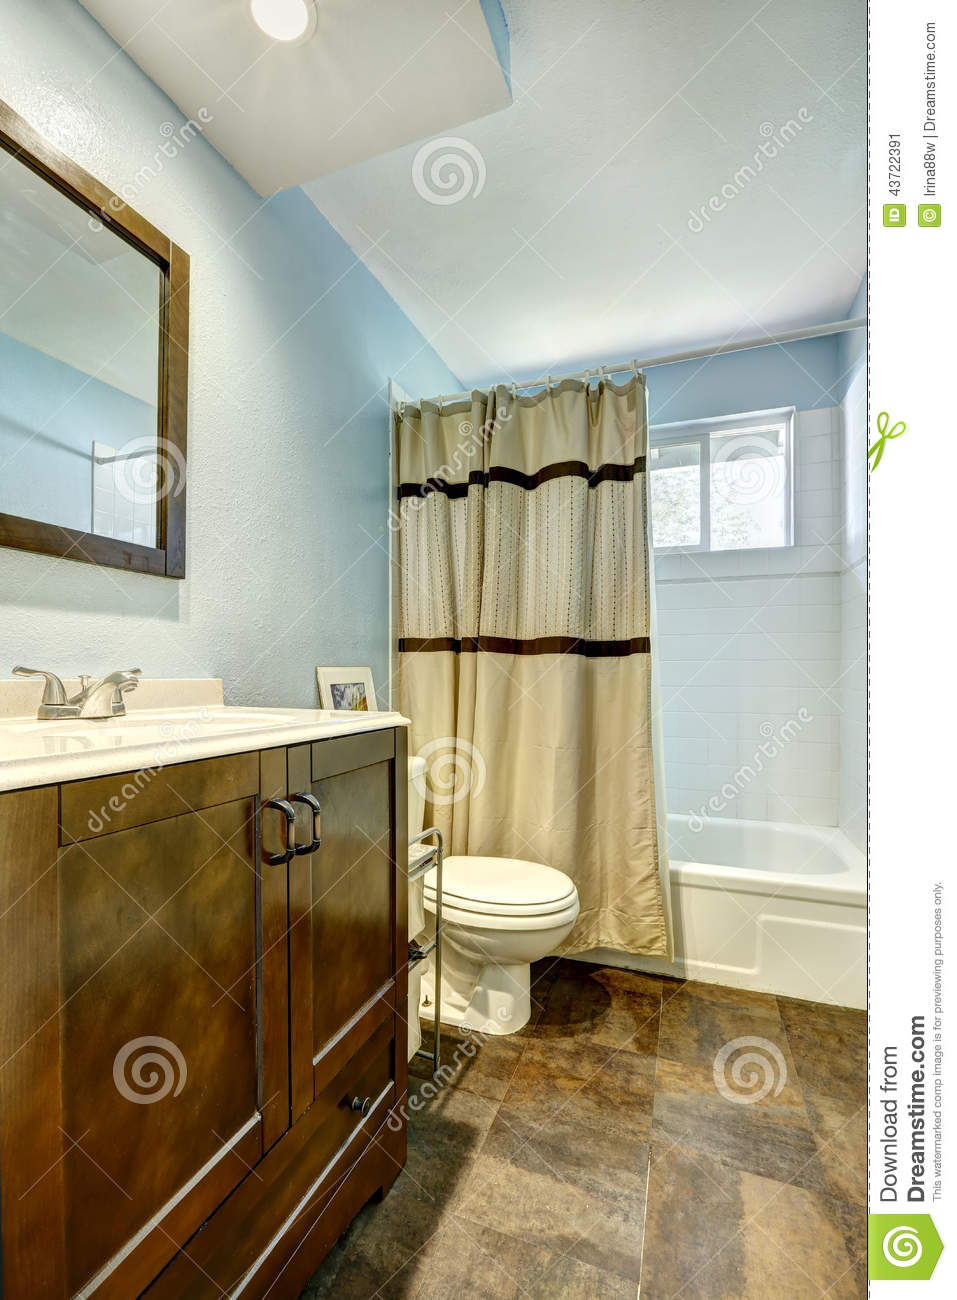 Light Blue Bathroom Wall Tiles: Bathroom With Brown Tile Floor And Light Blue Walls Stock